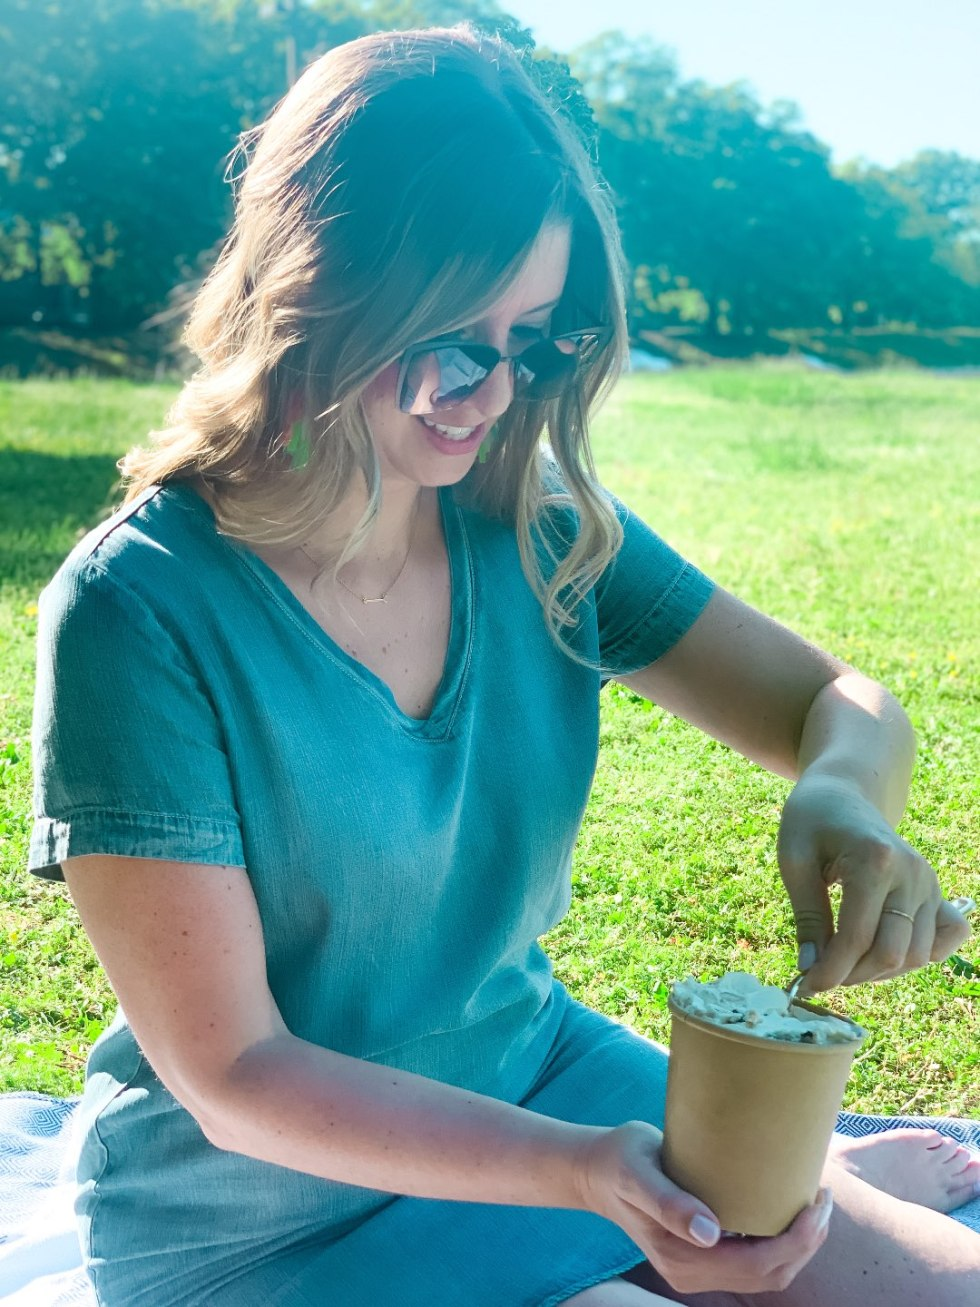 The Top 3 Places to Have a Picnic in Raleigh - I'm Fixin' To - @mbg0112    Picnic in Raleigh by popular North Carolina blog, I'm Fixin' To: image of a woman sitting on a blue tribal print blanket and eating Two Roosters ice cream.